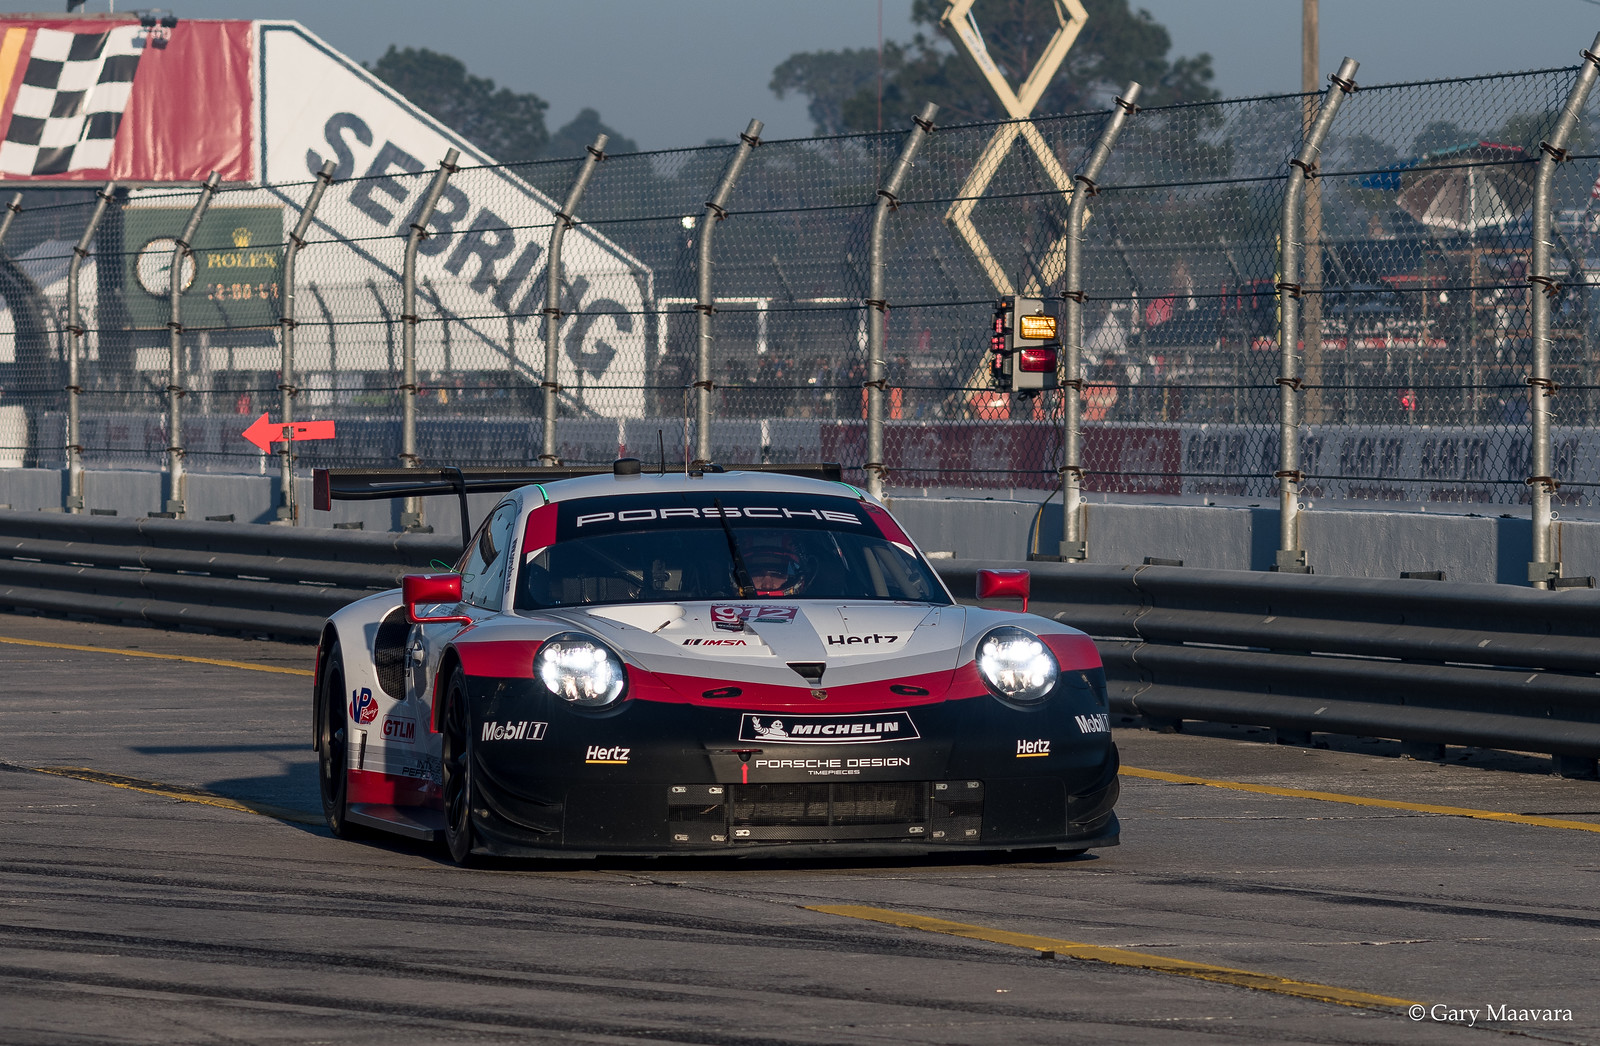 TrackWorthy - Weathertech morning warmup No. 912 Porsche 911 pits